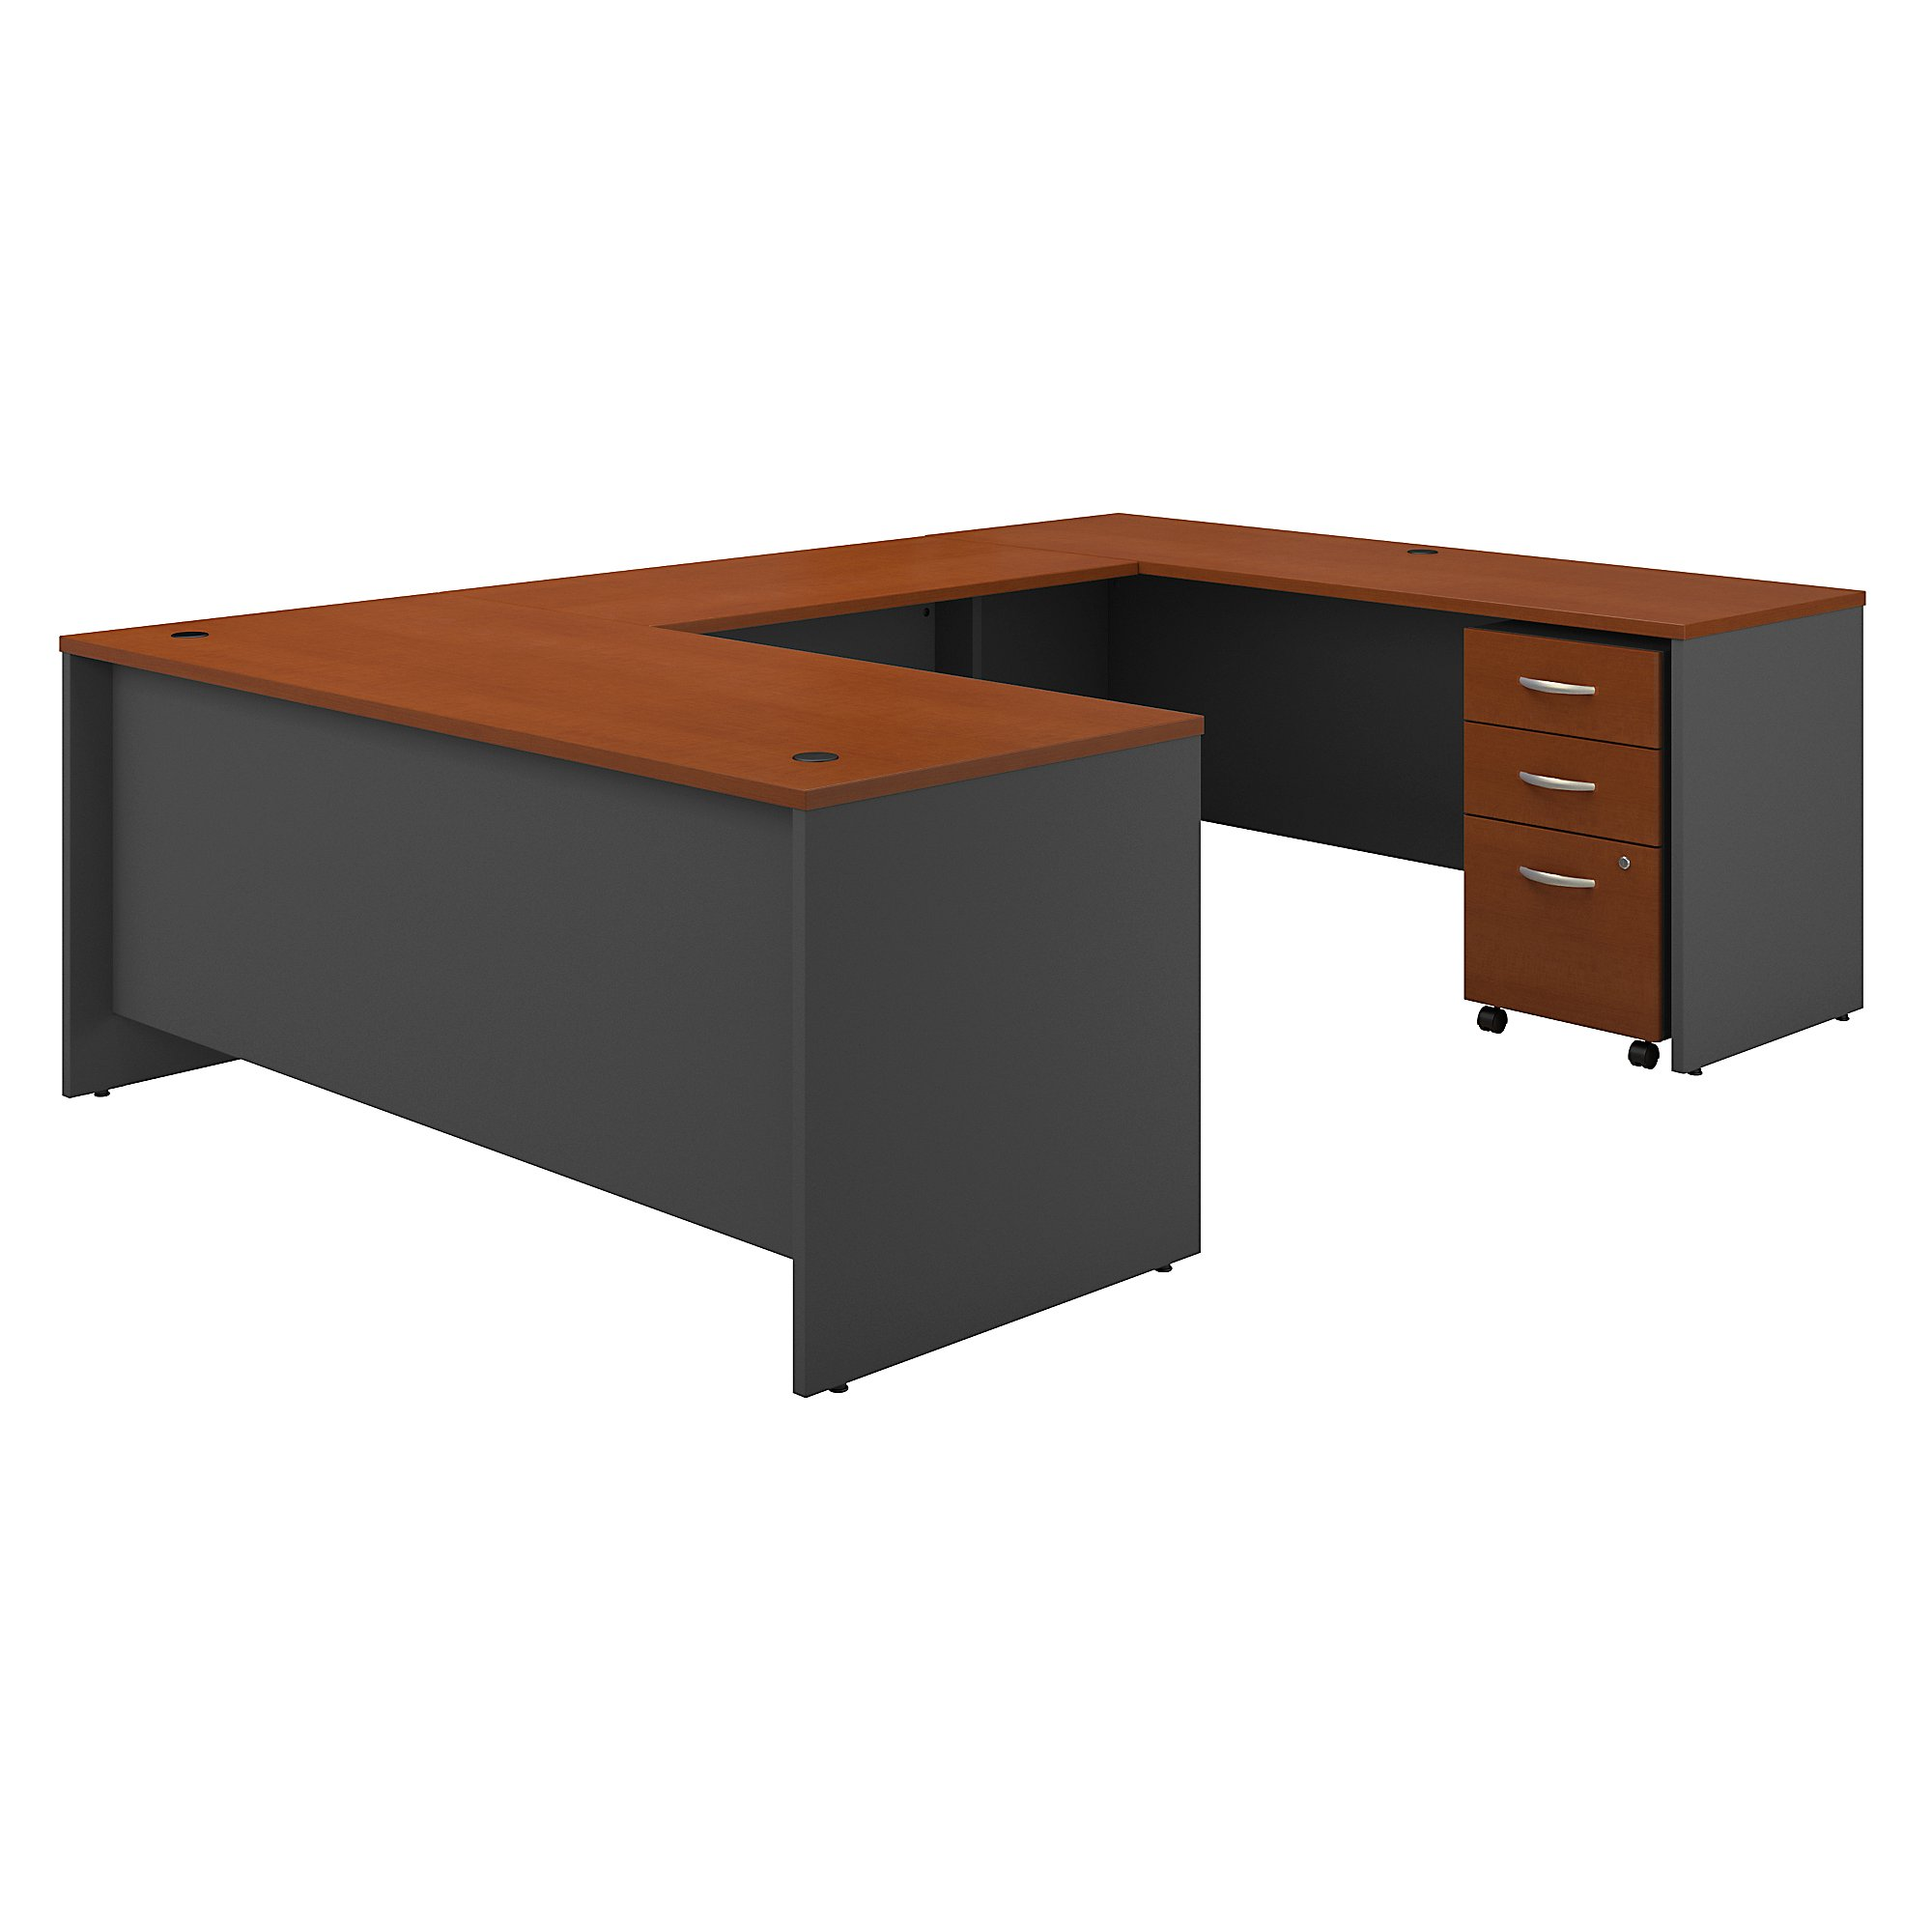 Office Furniture Series C 72 W x 30 D U Station with 3 Drawe